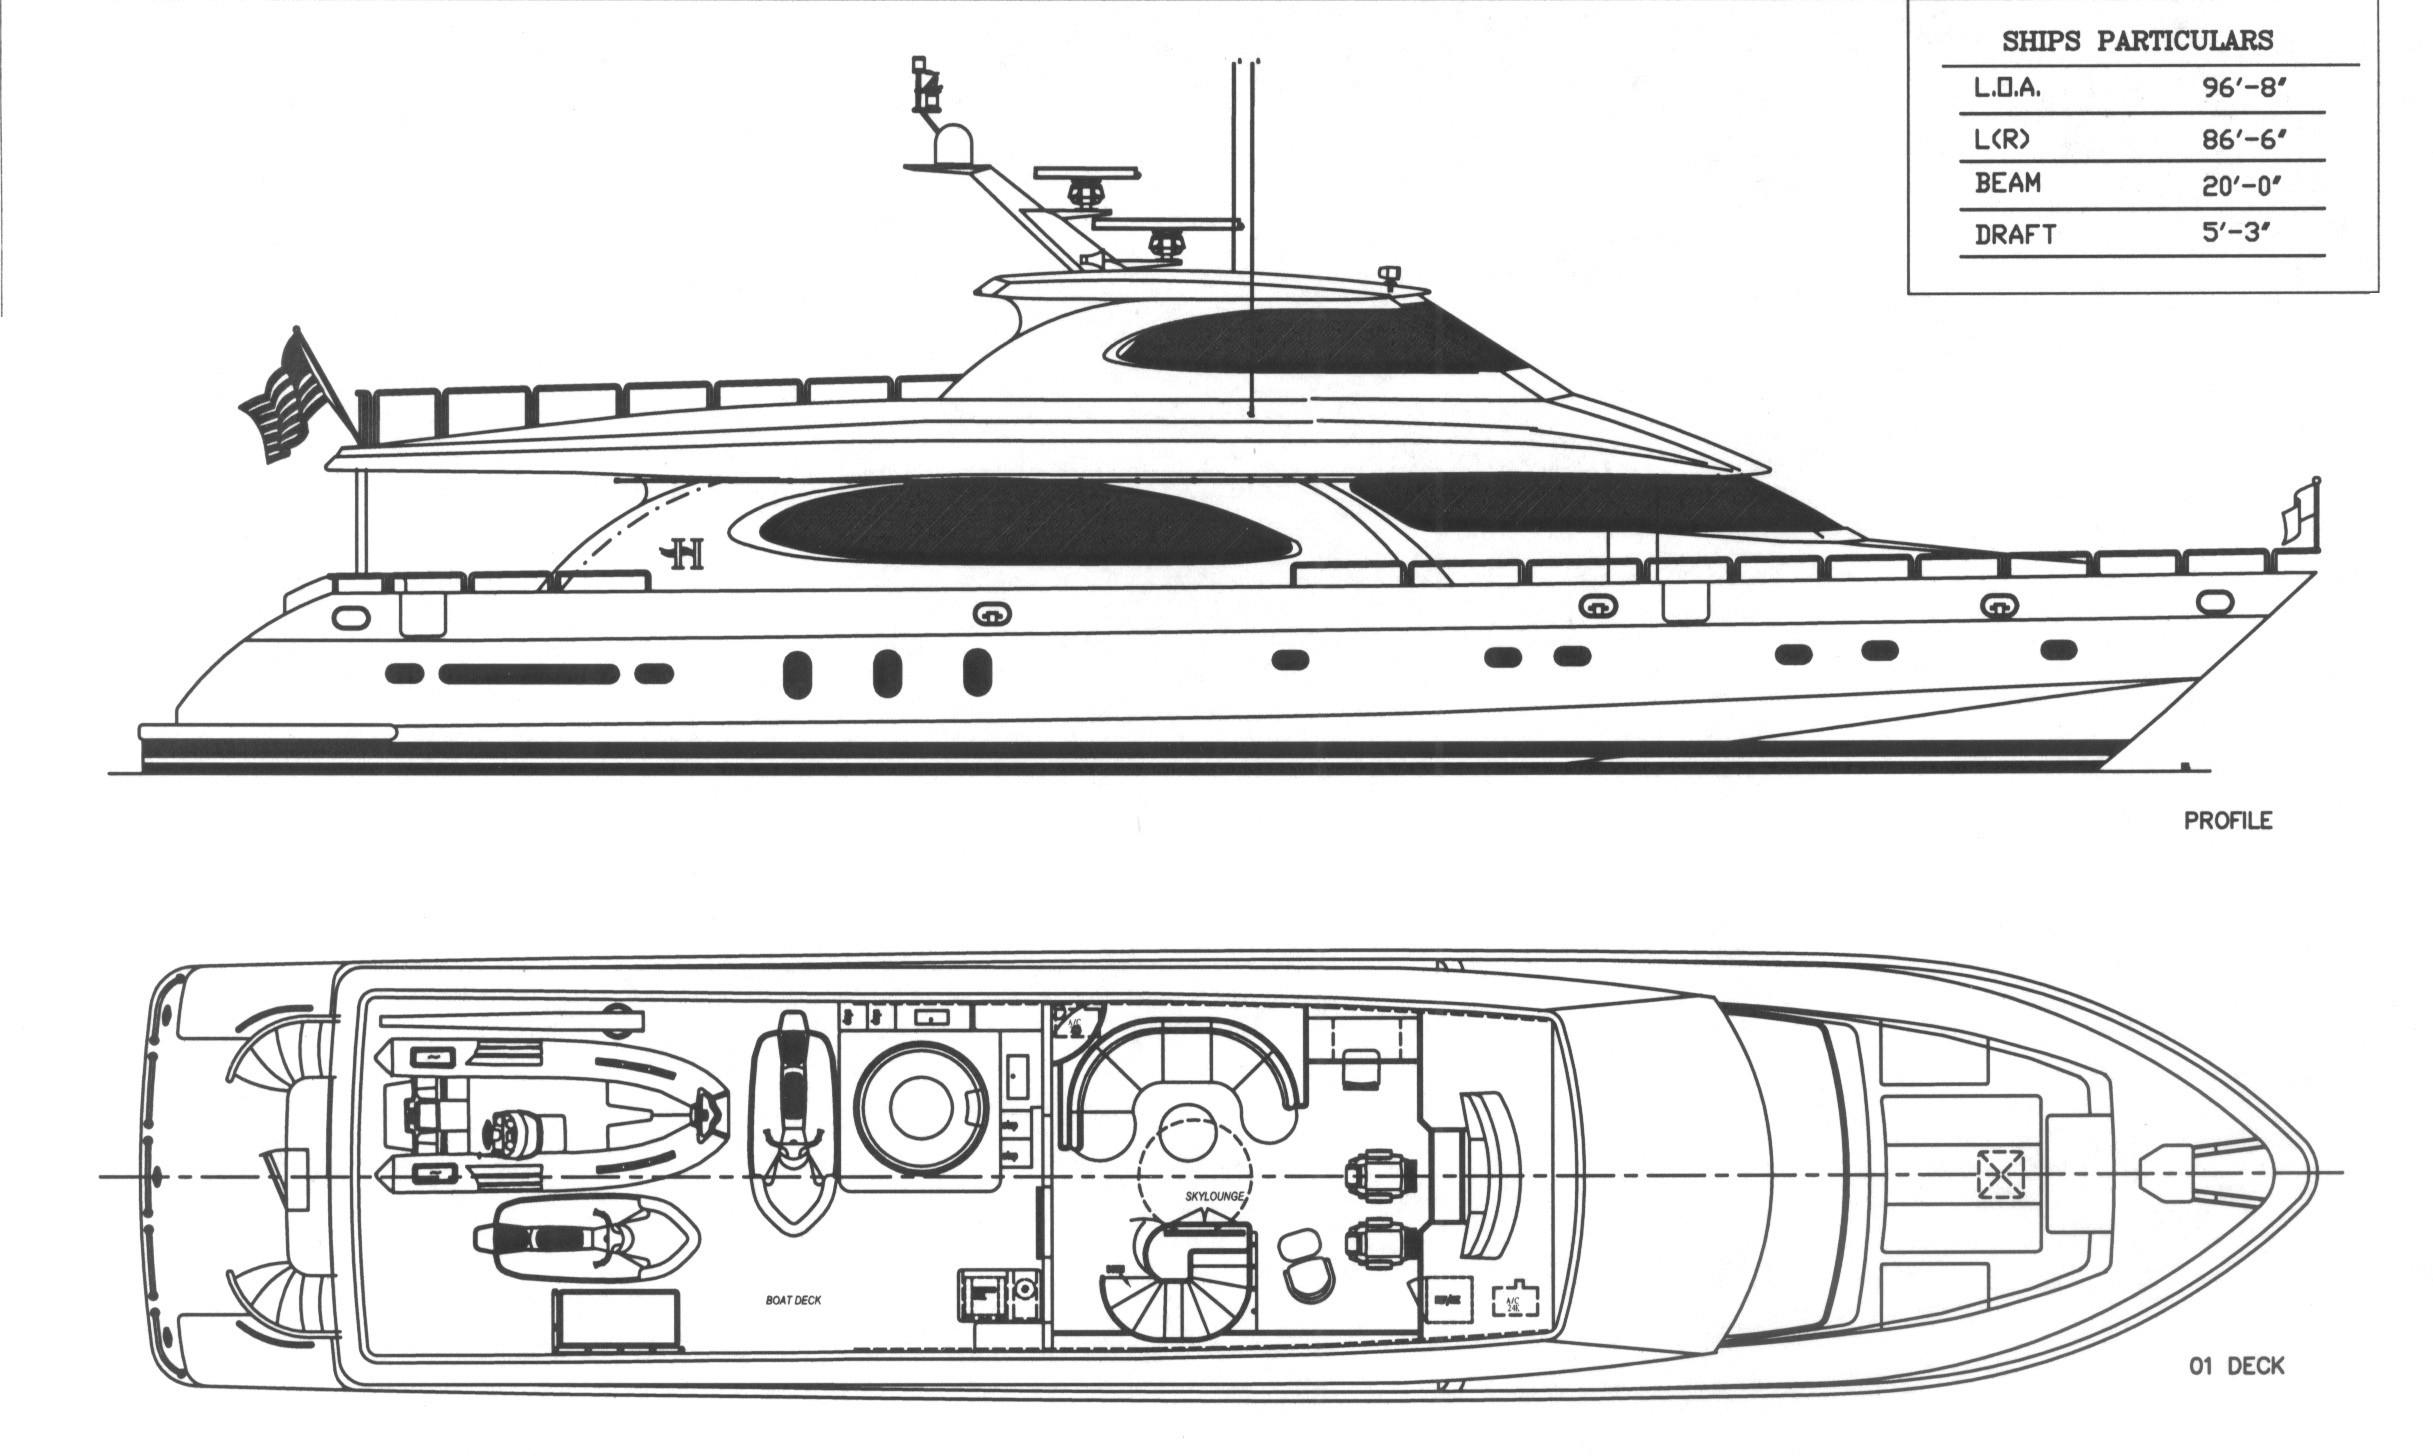 Profile and Upper Deck